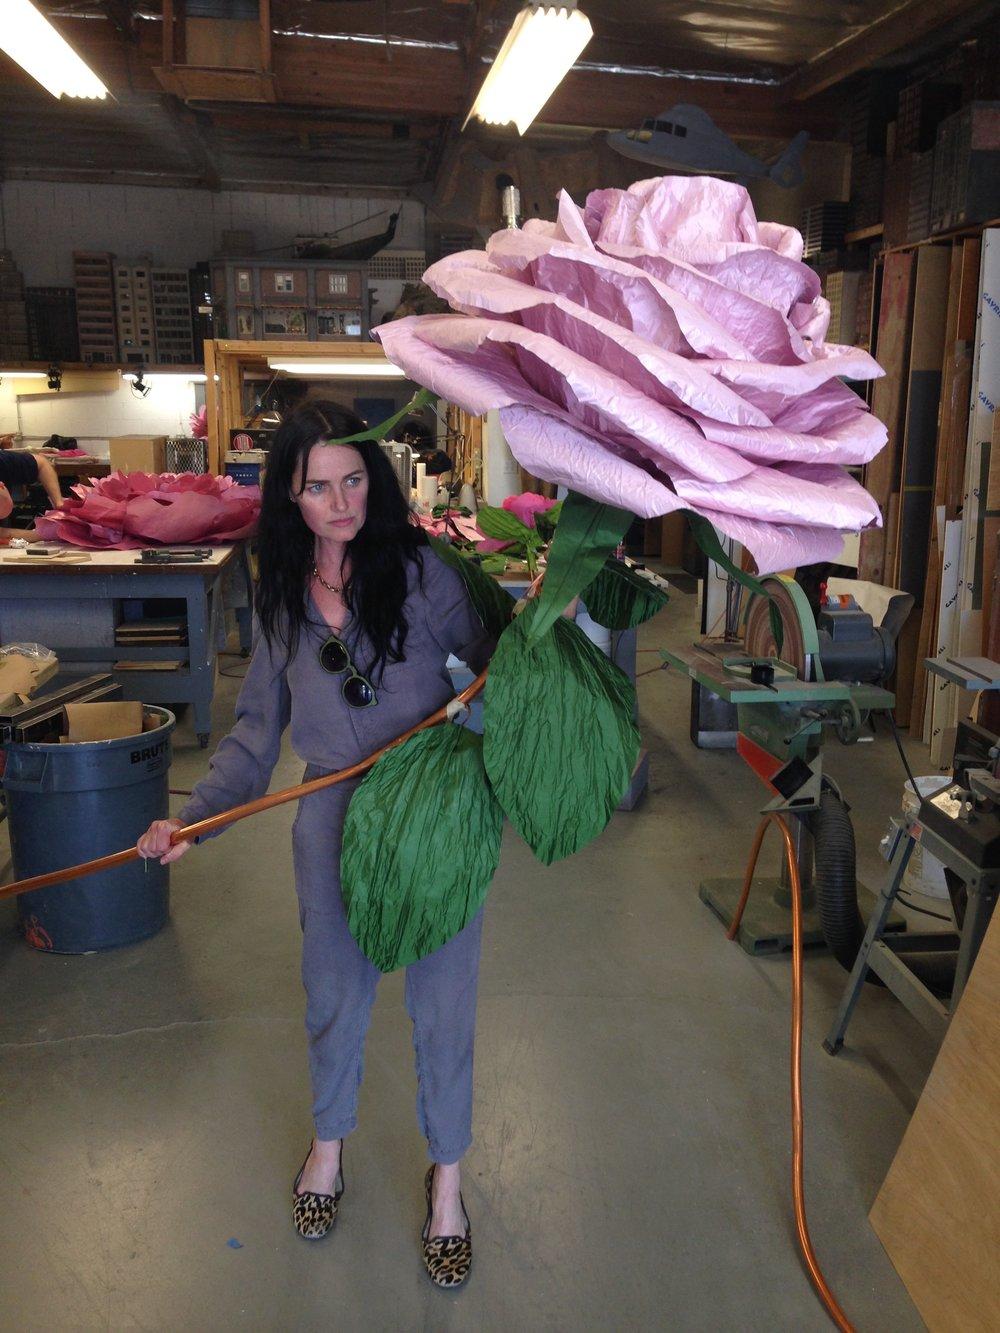 The trickiest part was making the giant silk flowers light enough for Katy Perry to be able to hold and walk around in high heels on set still looking graceful and beautiful. Here I am testing the weight with my fake high heels on.